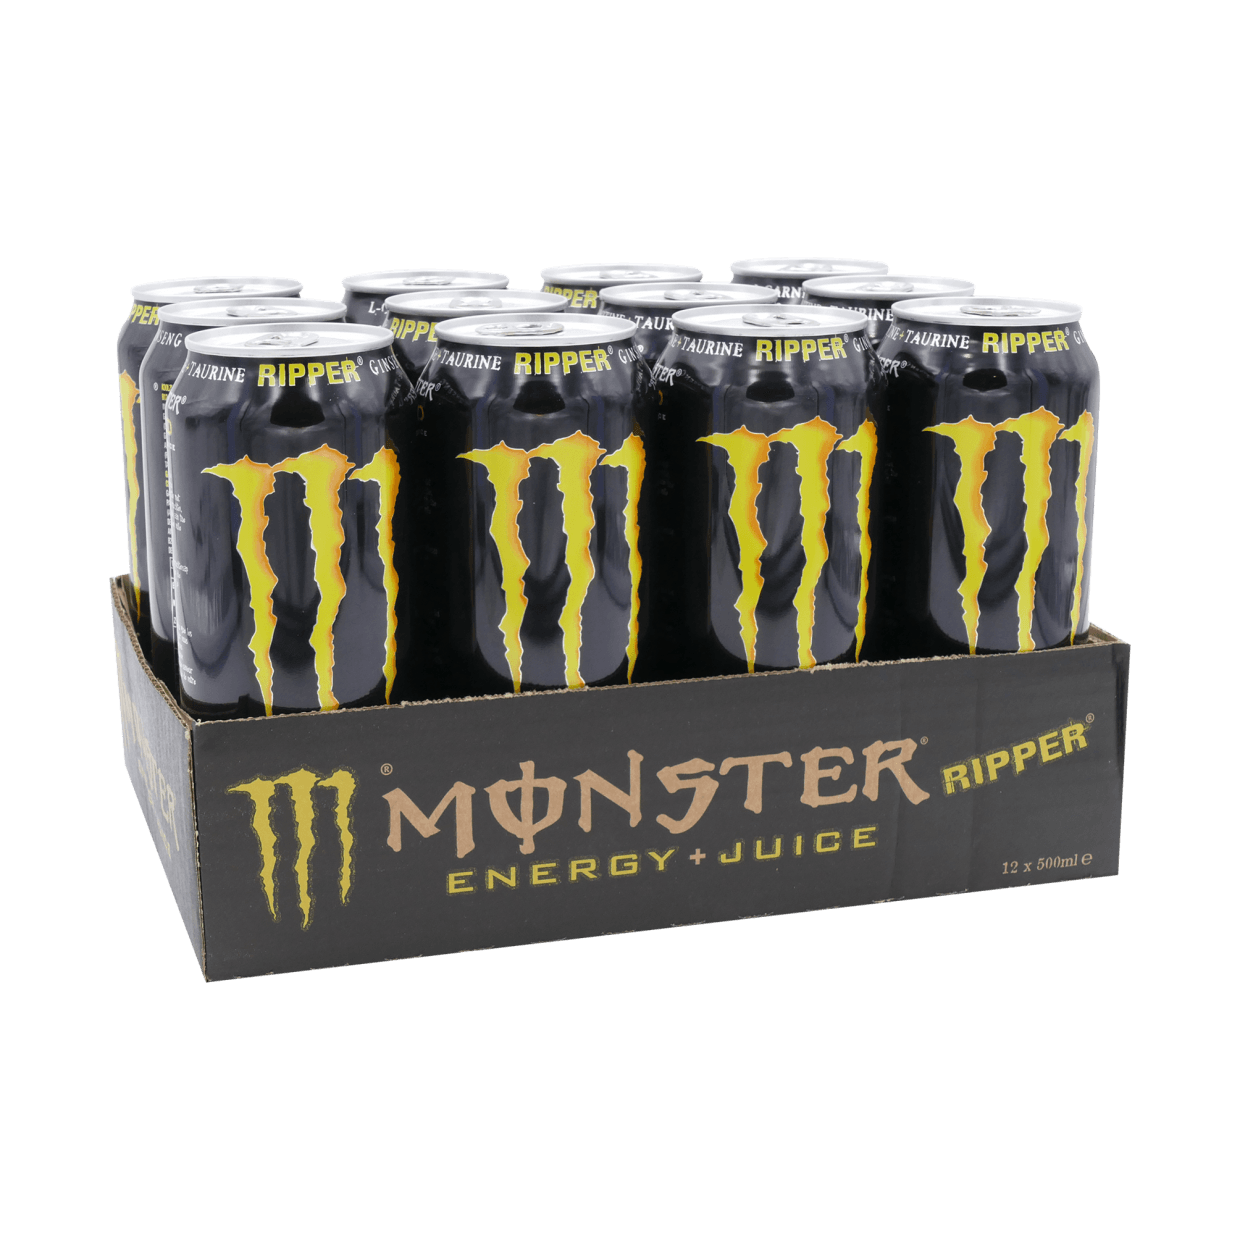 Monster Juiced Ripper